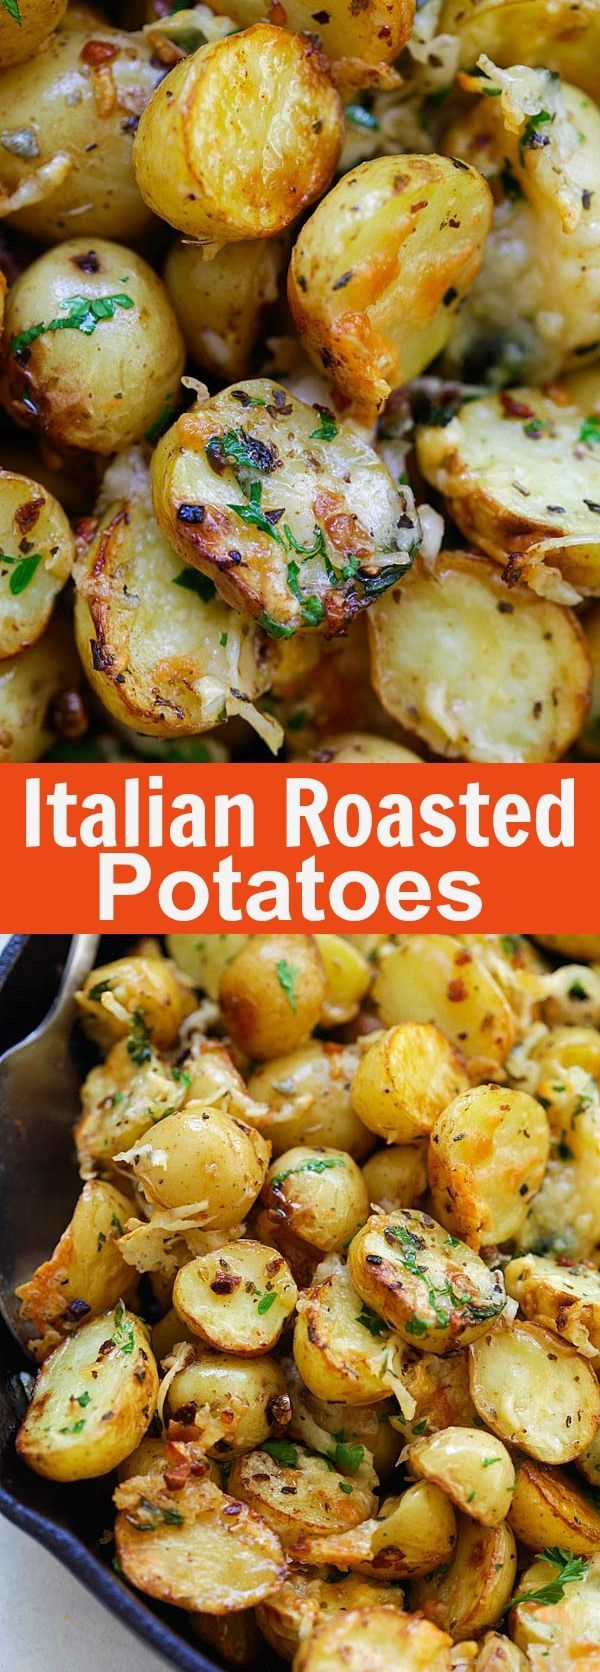 Italian Roasted Potatoes - buttery, cheesy oven-roasted potatoes with Italian seasoning, garlic, paprika and Parmesan cheese